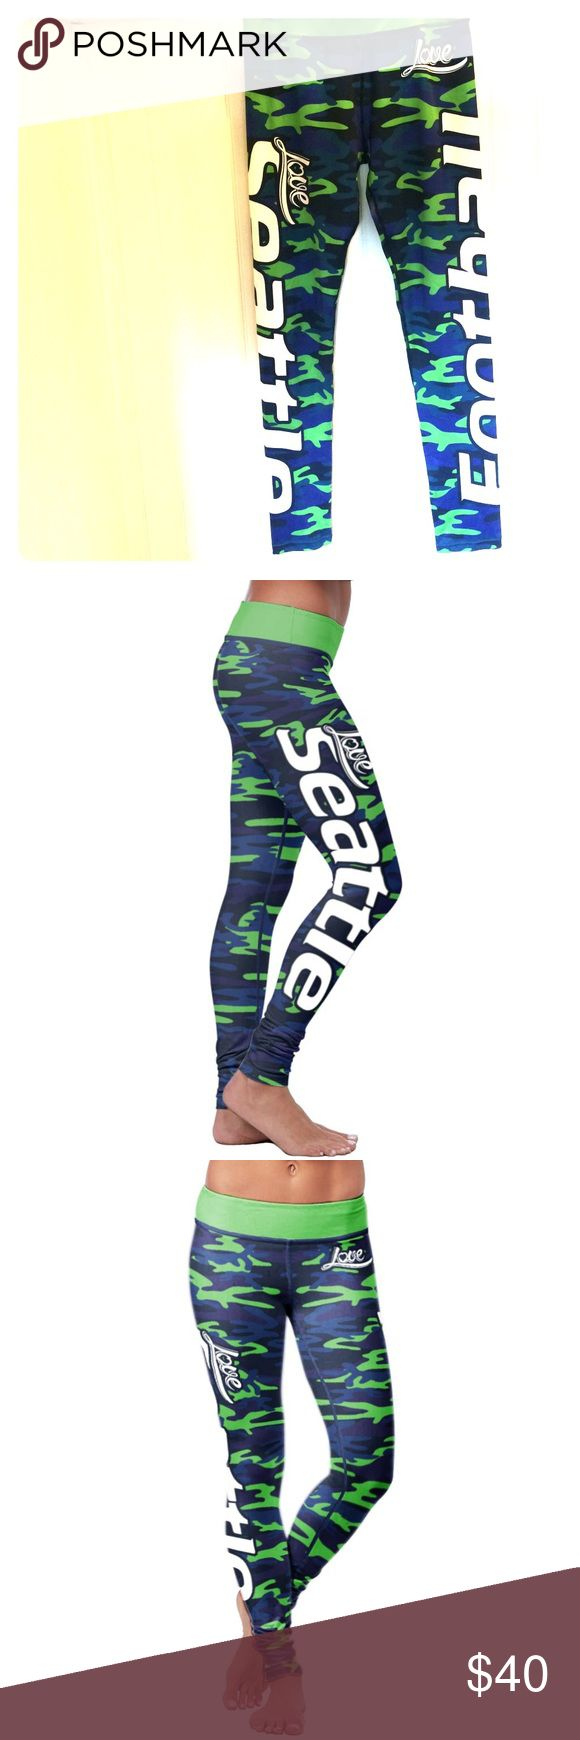 """Seattle Football Camo Legging. Super comfortable. Green,Blue Camo and I only worn it once. The waist: 33-34"""" Hip:42-44"""" Inseam:29"""" XLUSION Pants Leggings"""